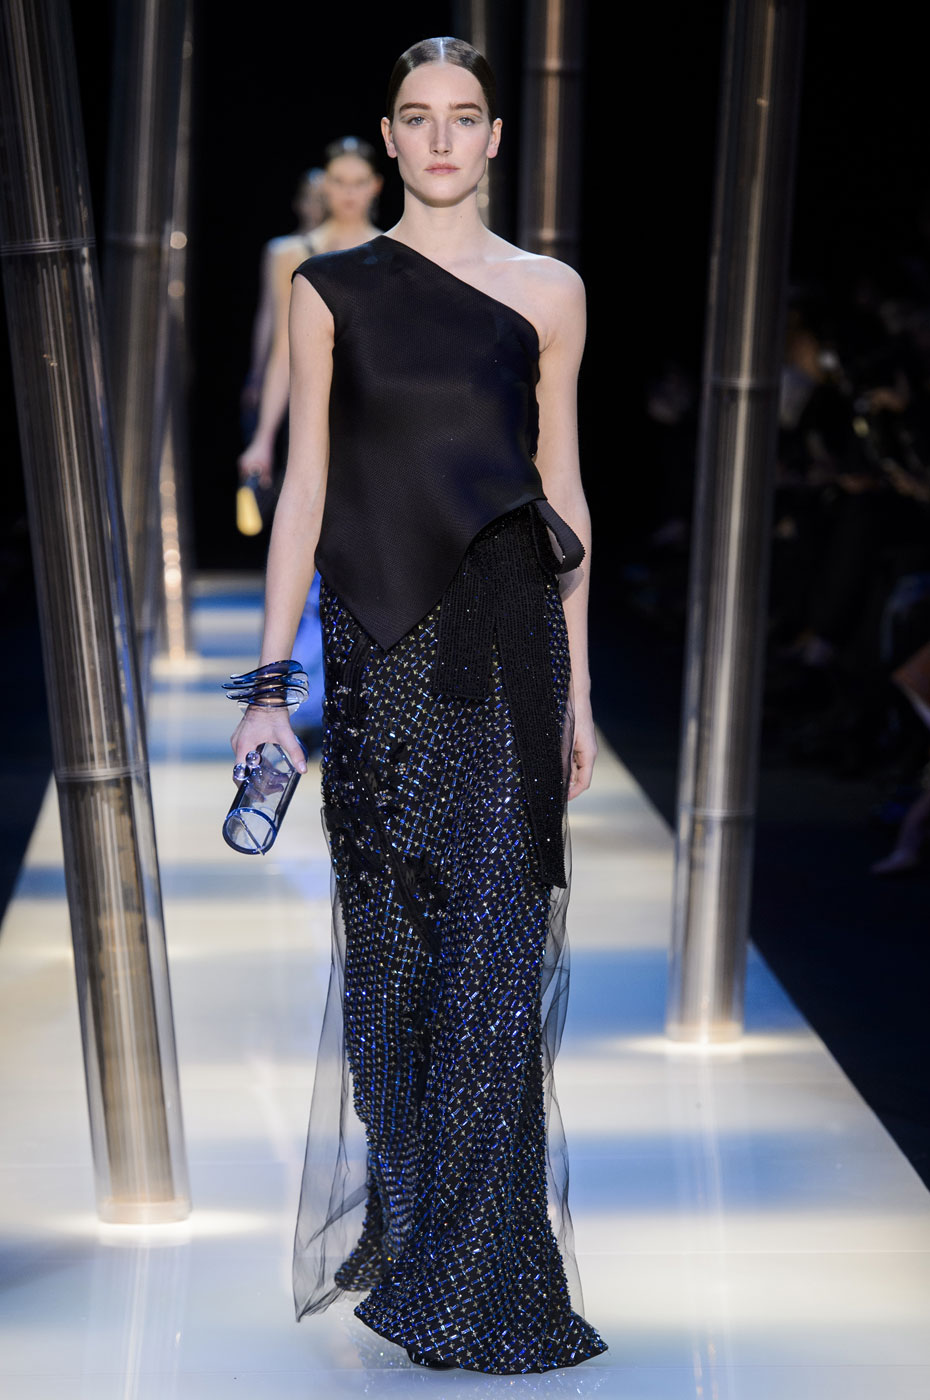 Giorgio-armani-Prive-fashion-runway-show-haute-couture-paris-spring-2015-the-impression-133